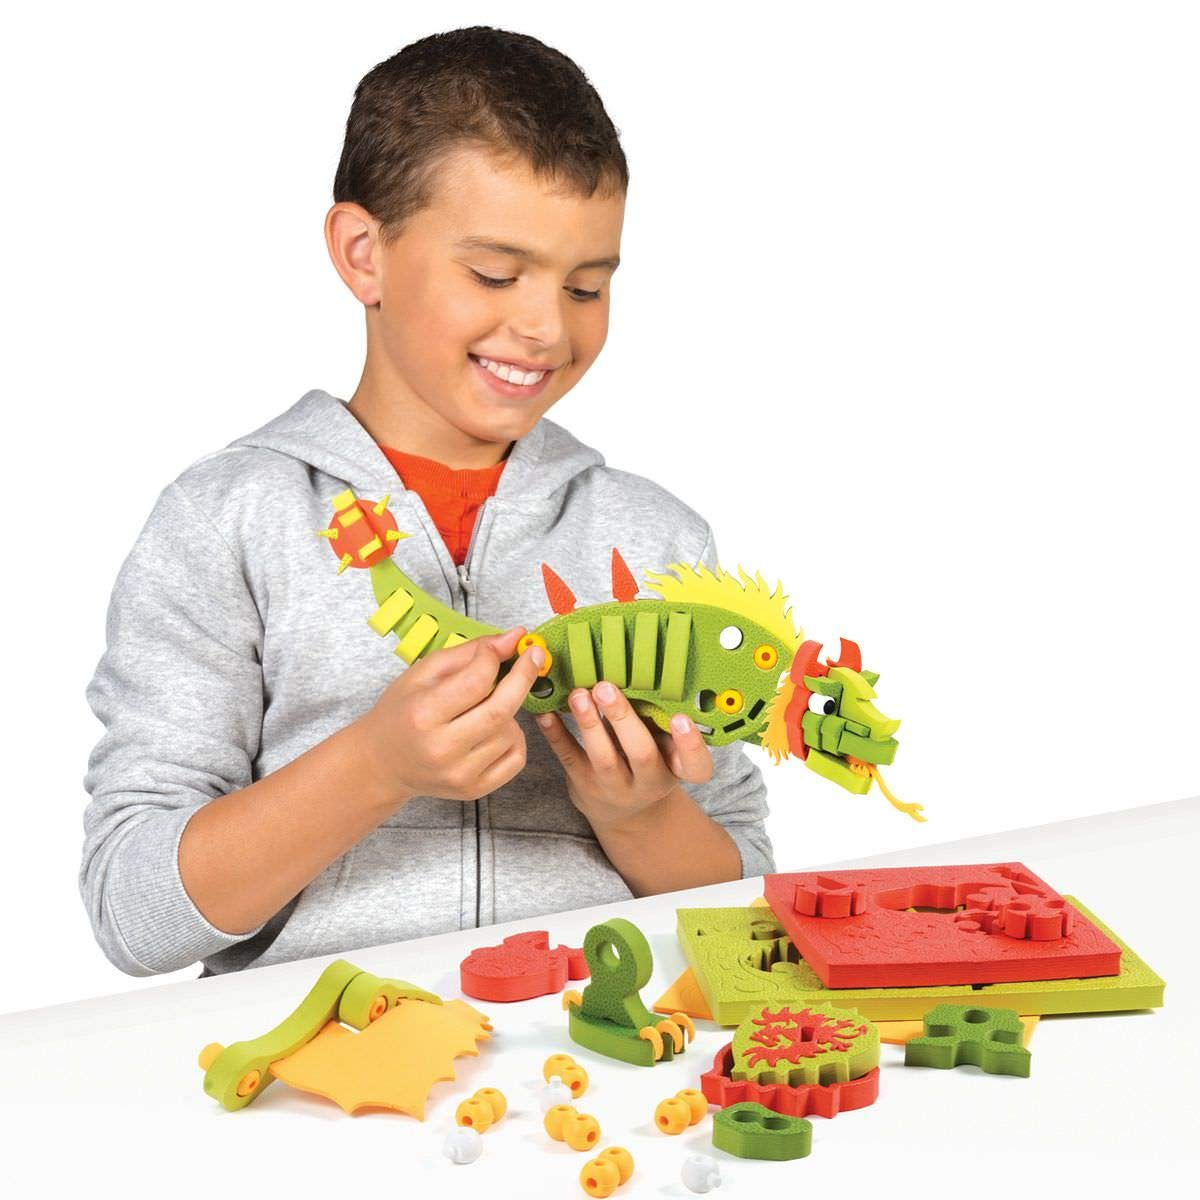 Cool Present for Boys Kids Creative Craft Set for Boys SMU-30531 PURE /& CO LTD Build Your Dragon Style Me Up Bloco Combat Dragon Construction Set